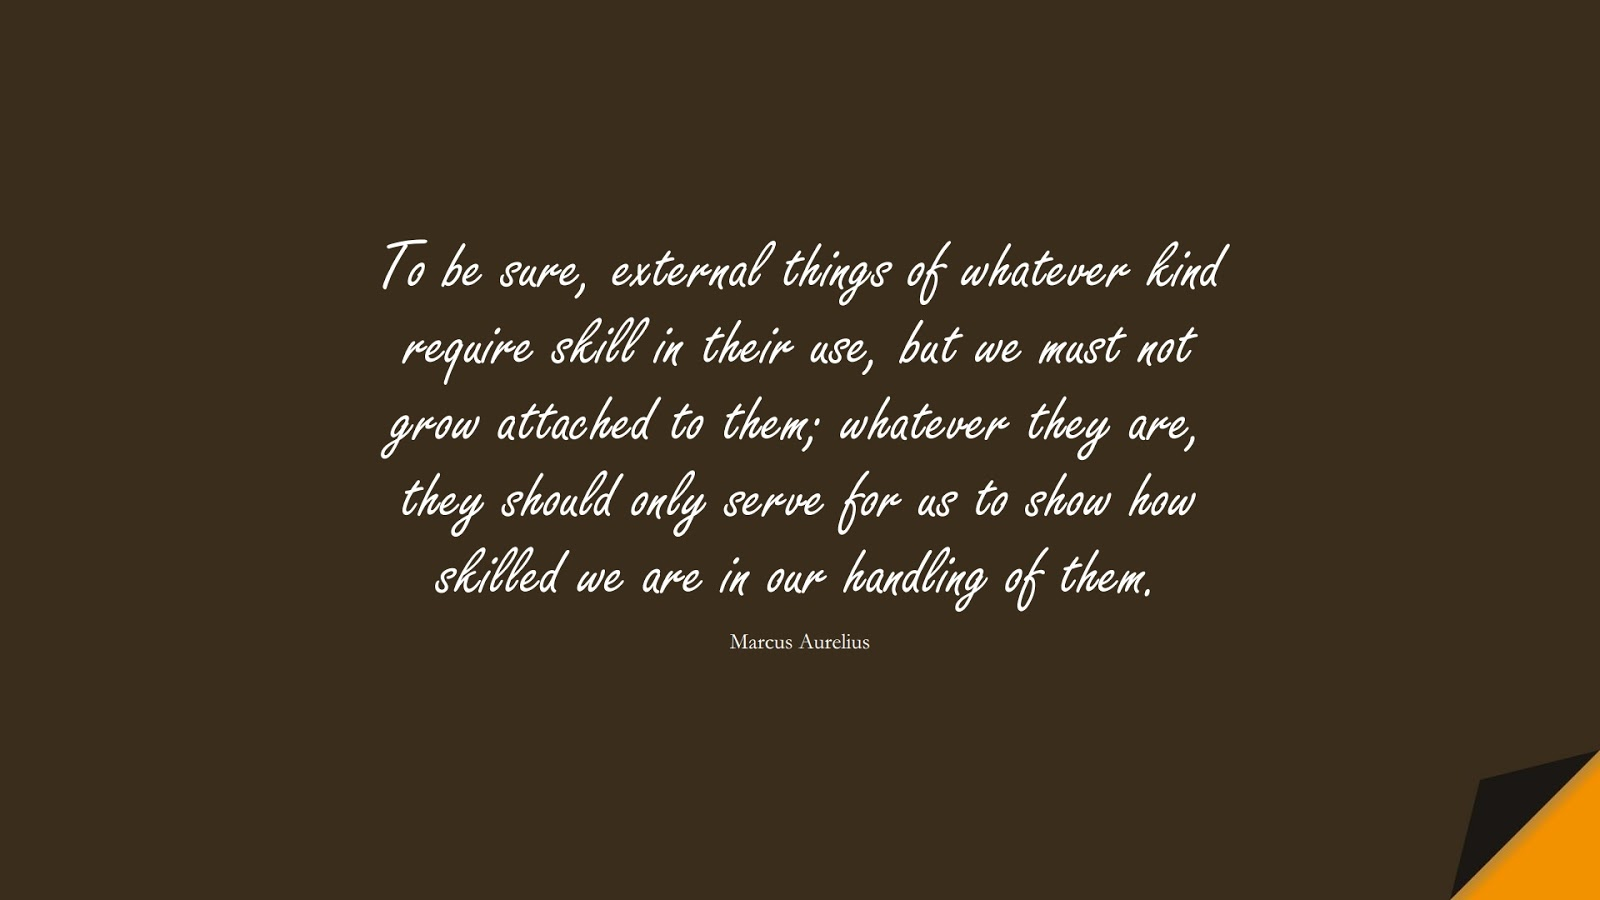 To be sure, external things of whatever kind require skill in their use, but we must not grow attached to them; whatever they are, they should only serve for us to show how skilled we are in our handling of them. (Marcus Aurelius);  #MarcusAureliusQuotes